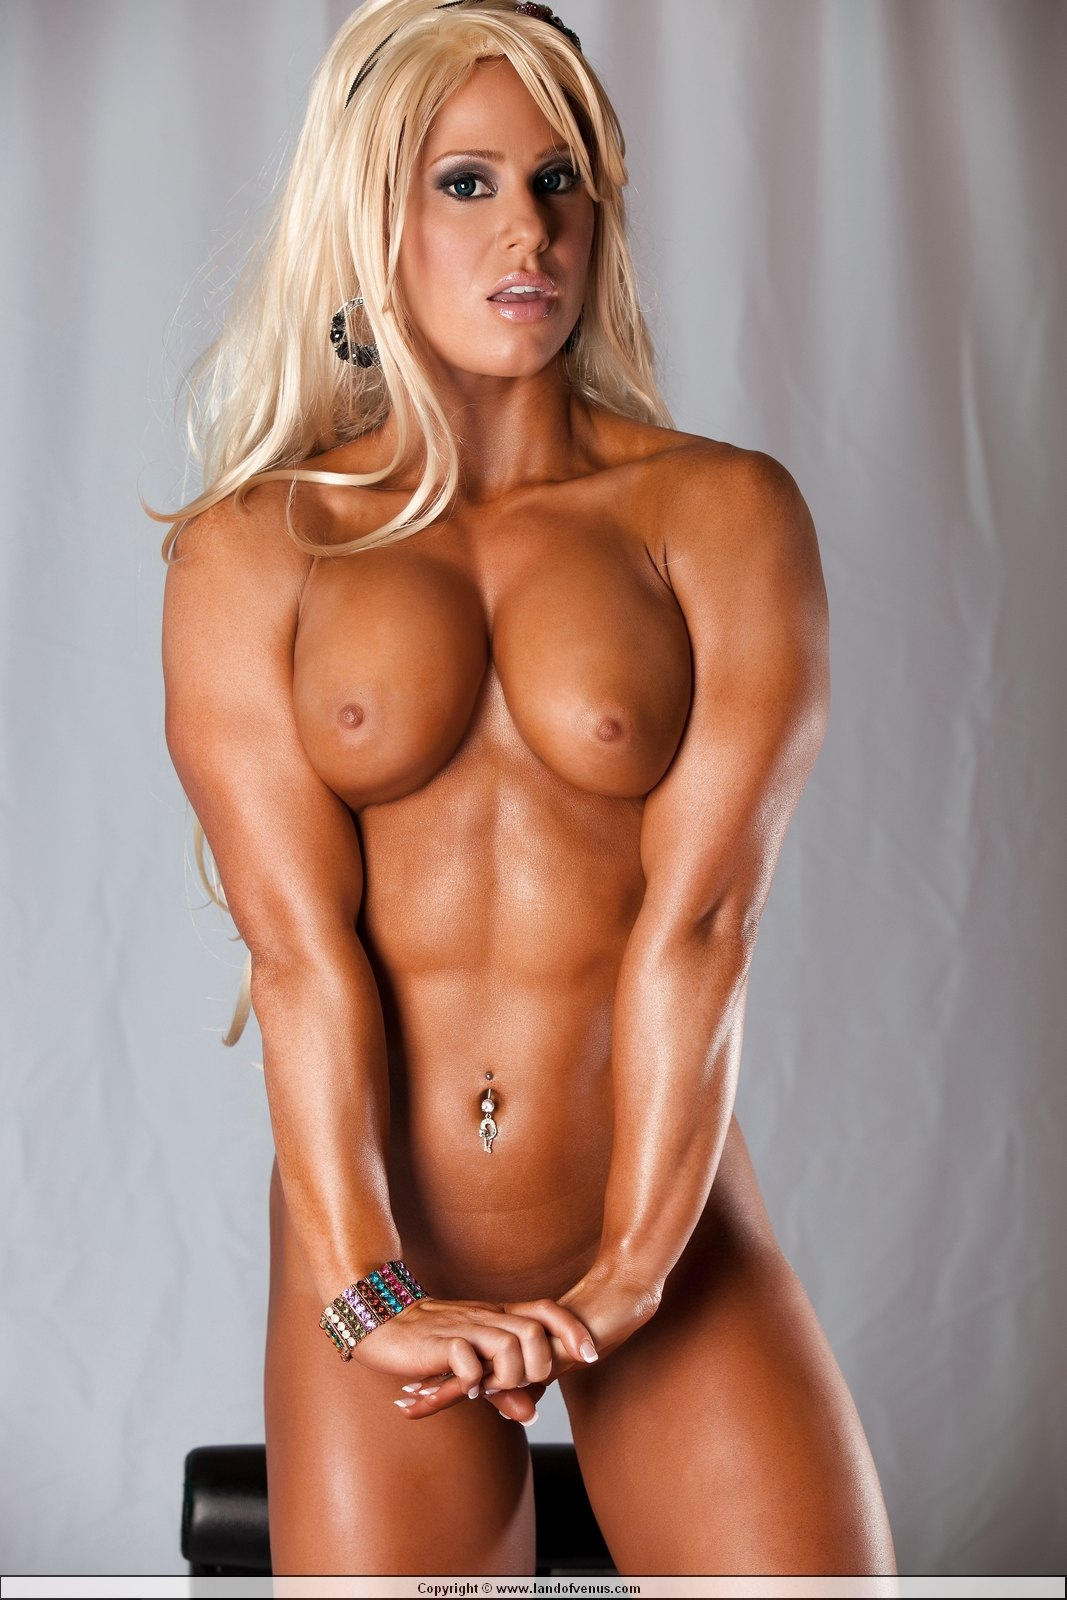 Free nude muscle porn babe galleries